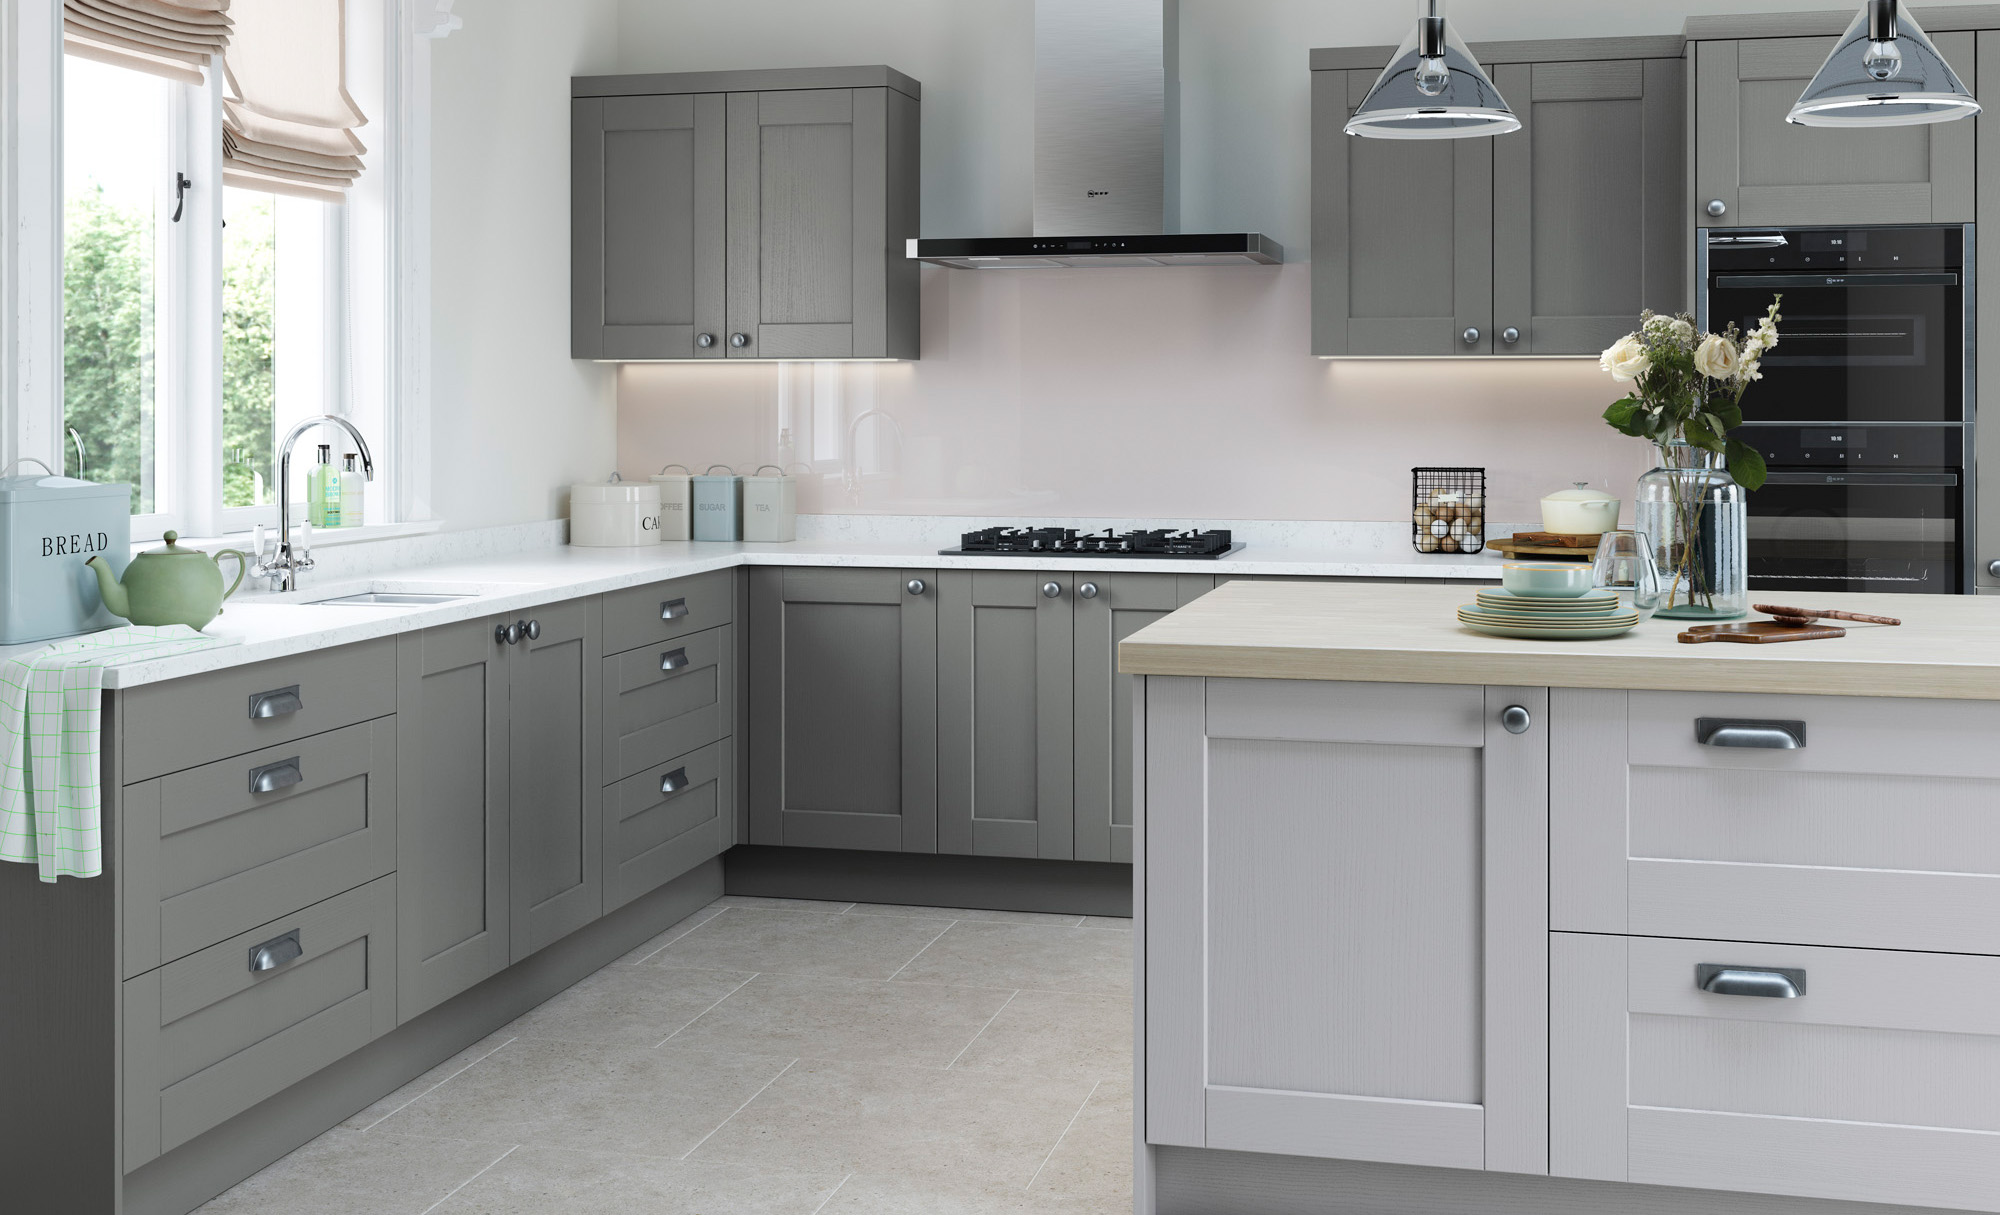 Shaker Kitchen Doors Kensington Classic Uform: kitchen design light grey